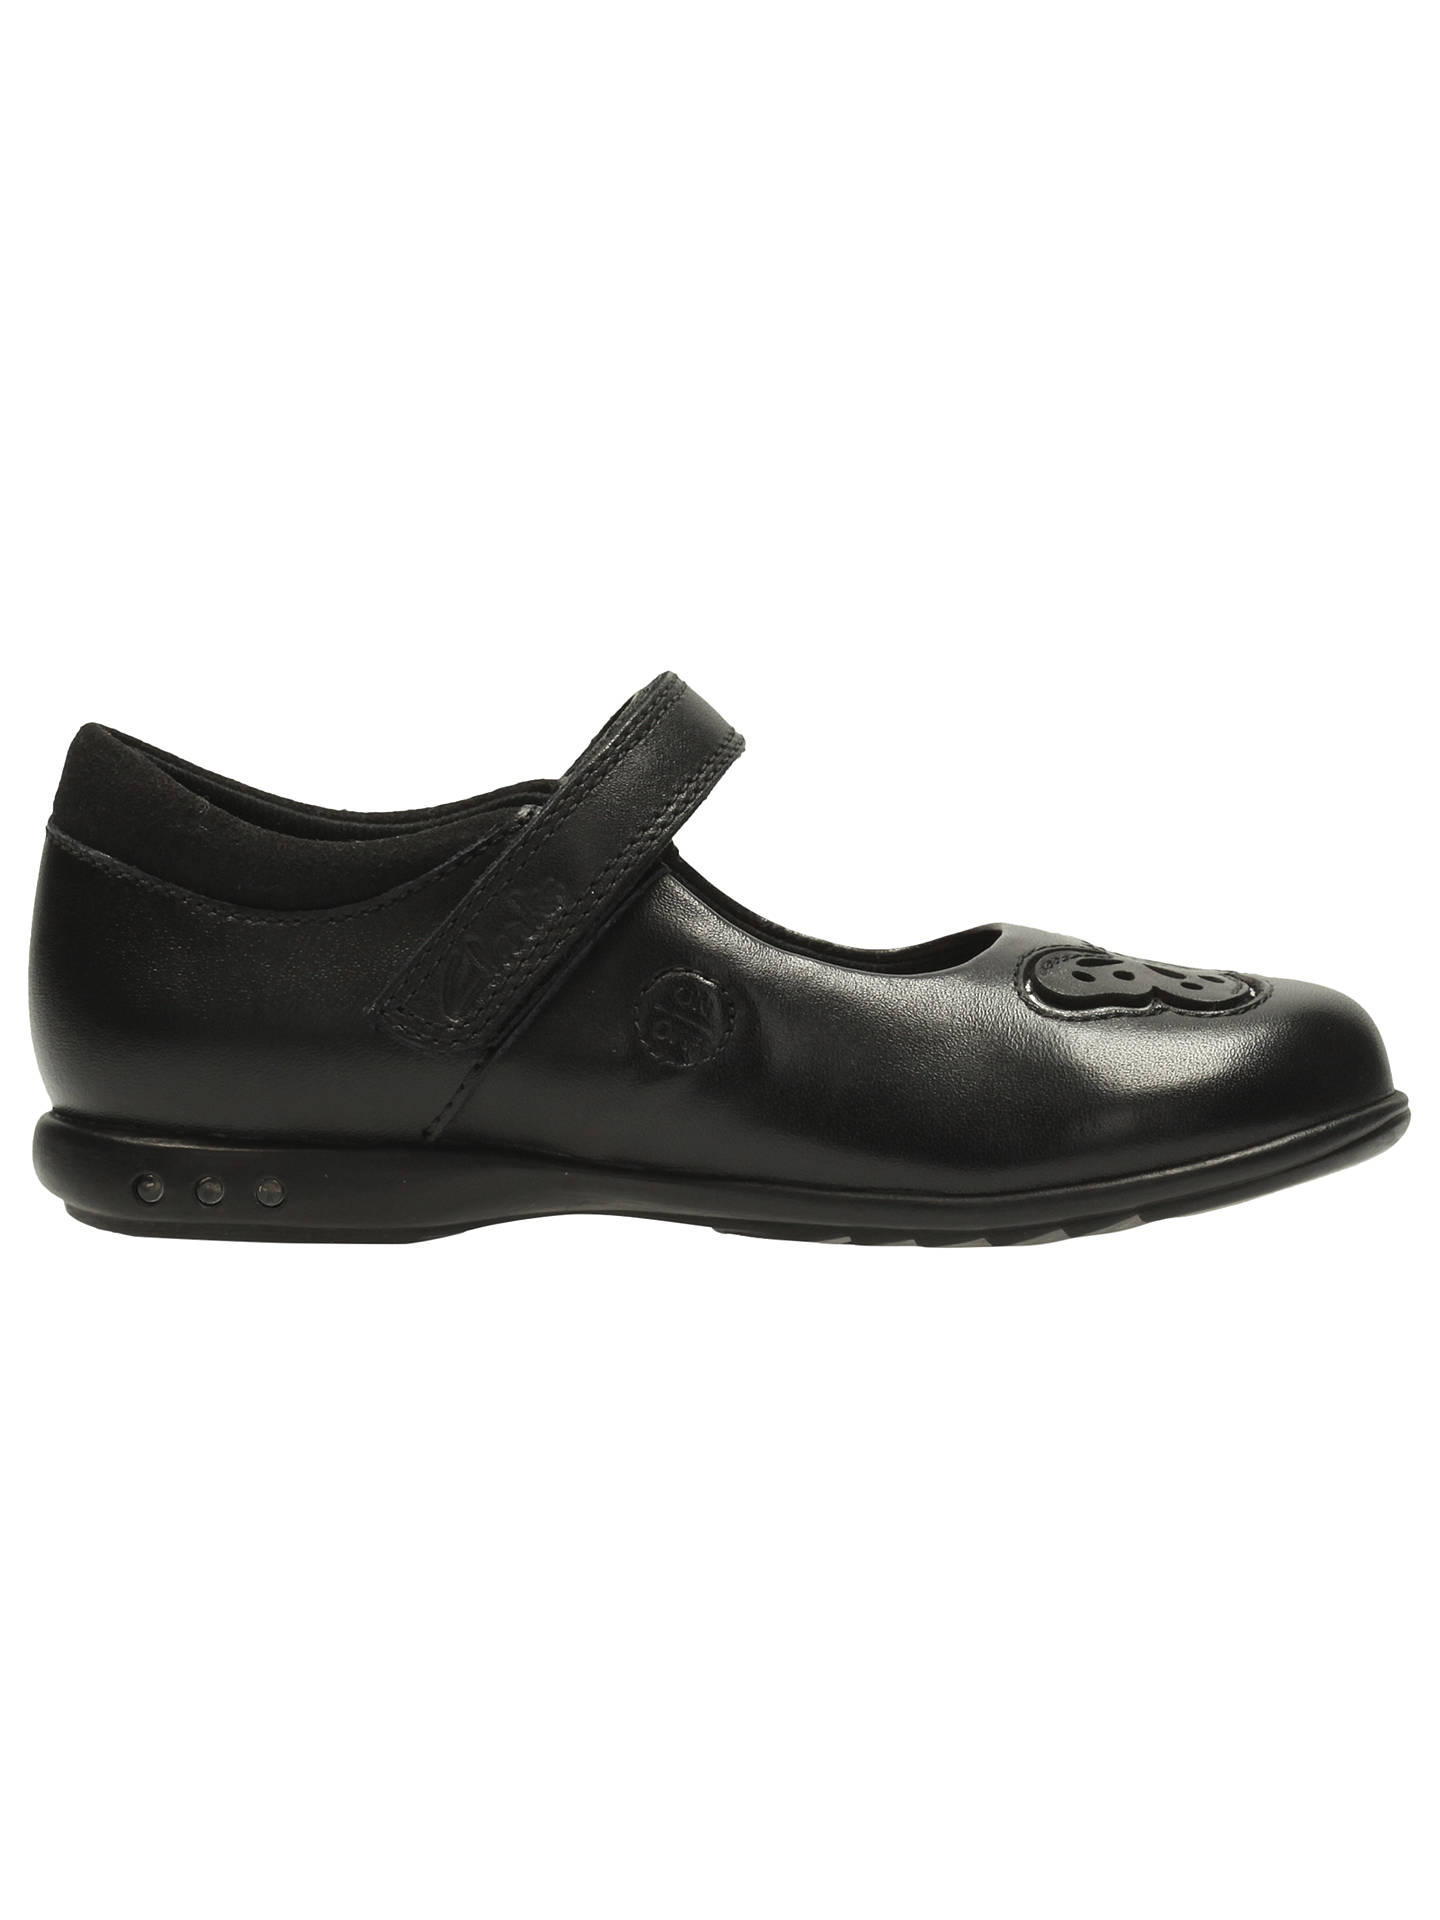 TRIXI ROSE INF F /& G FIT GIRLS CLARKS BLACK LEATHER SHOES STYLE